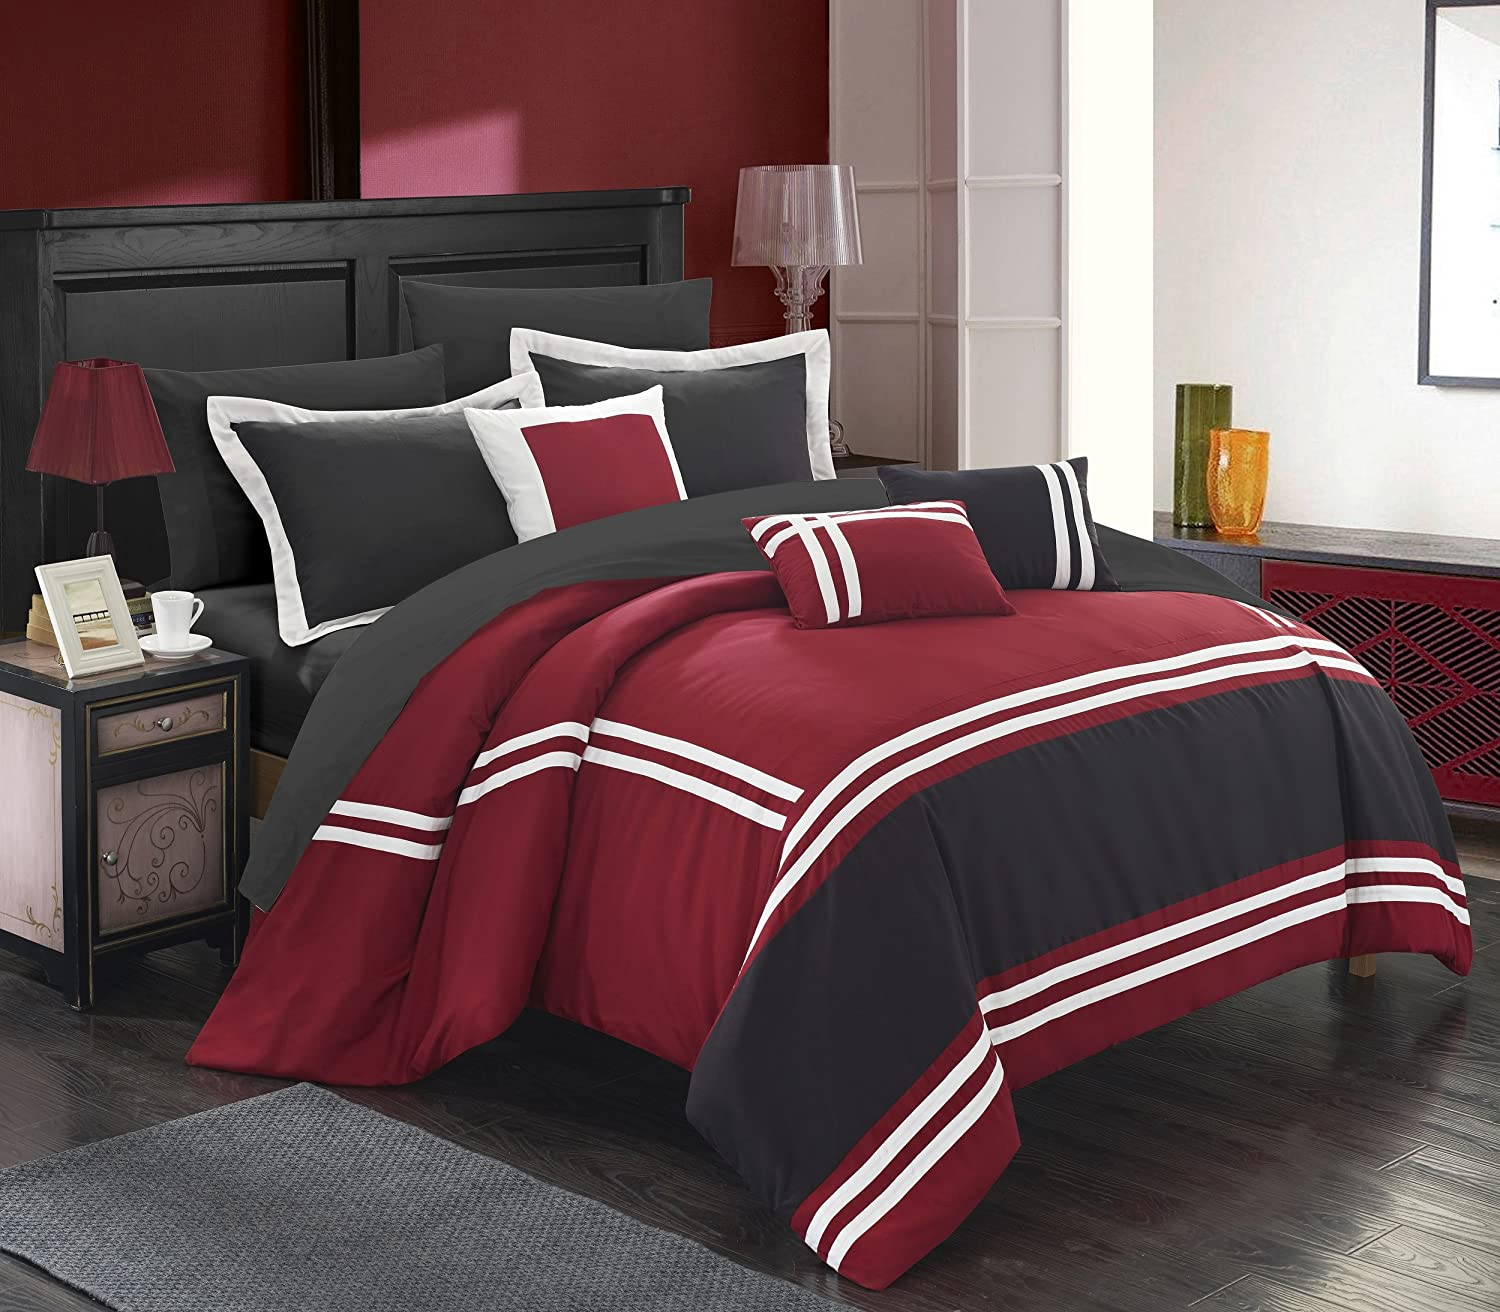 bedding sale queen cheap comforter burgundy sets ease style pin with oversized